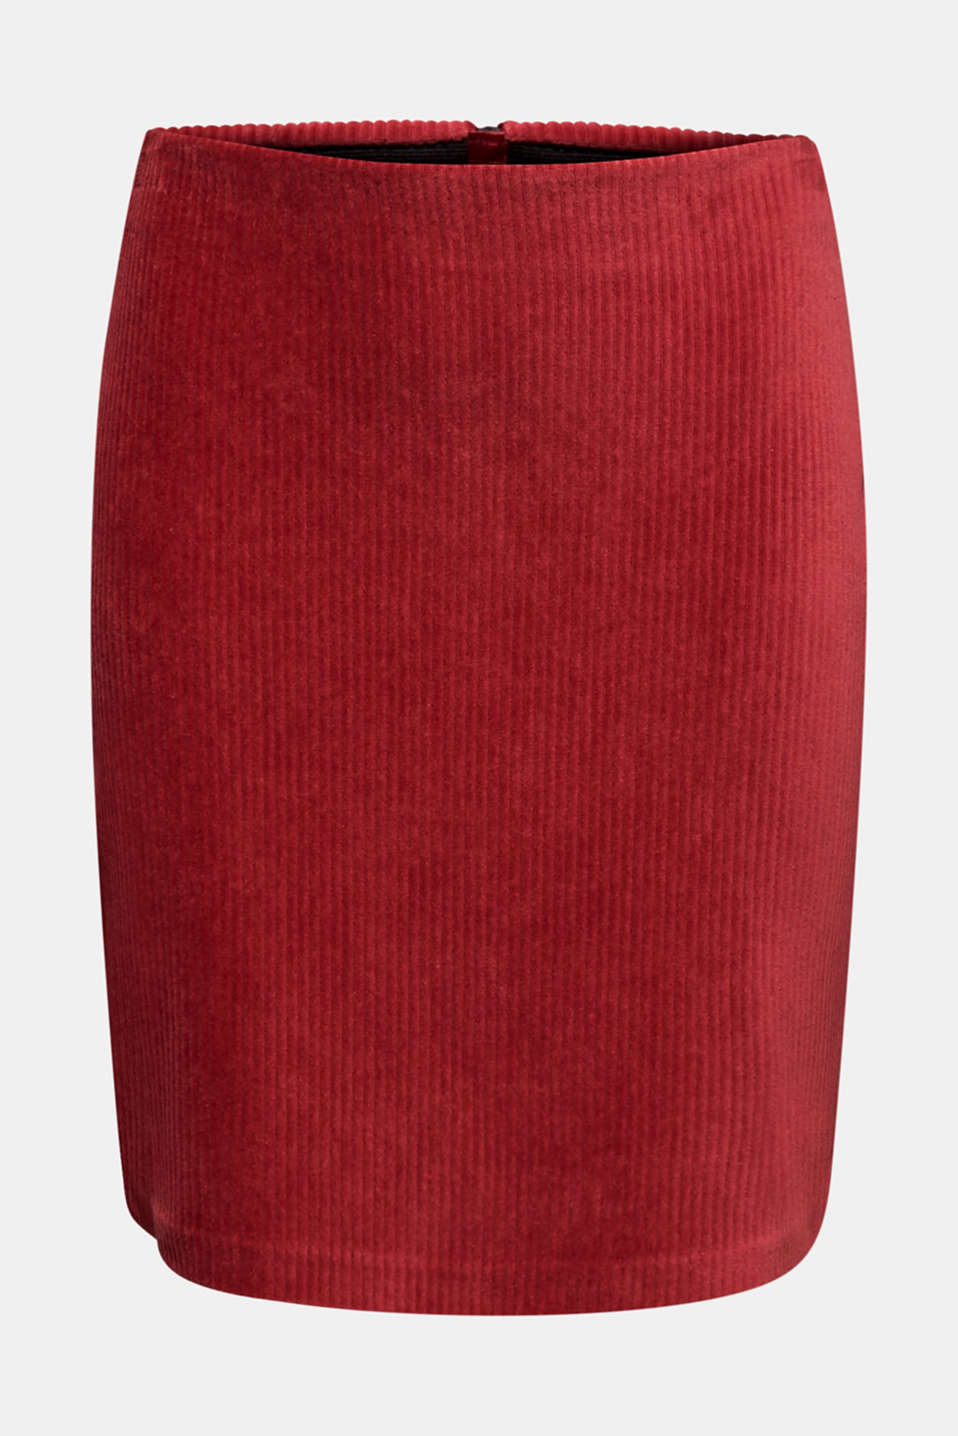 Skirts knitted, GARNET RED, detail image number 7